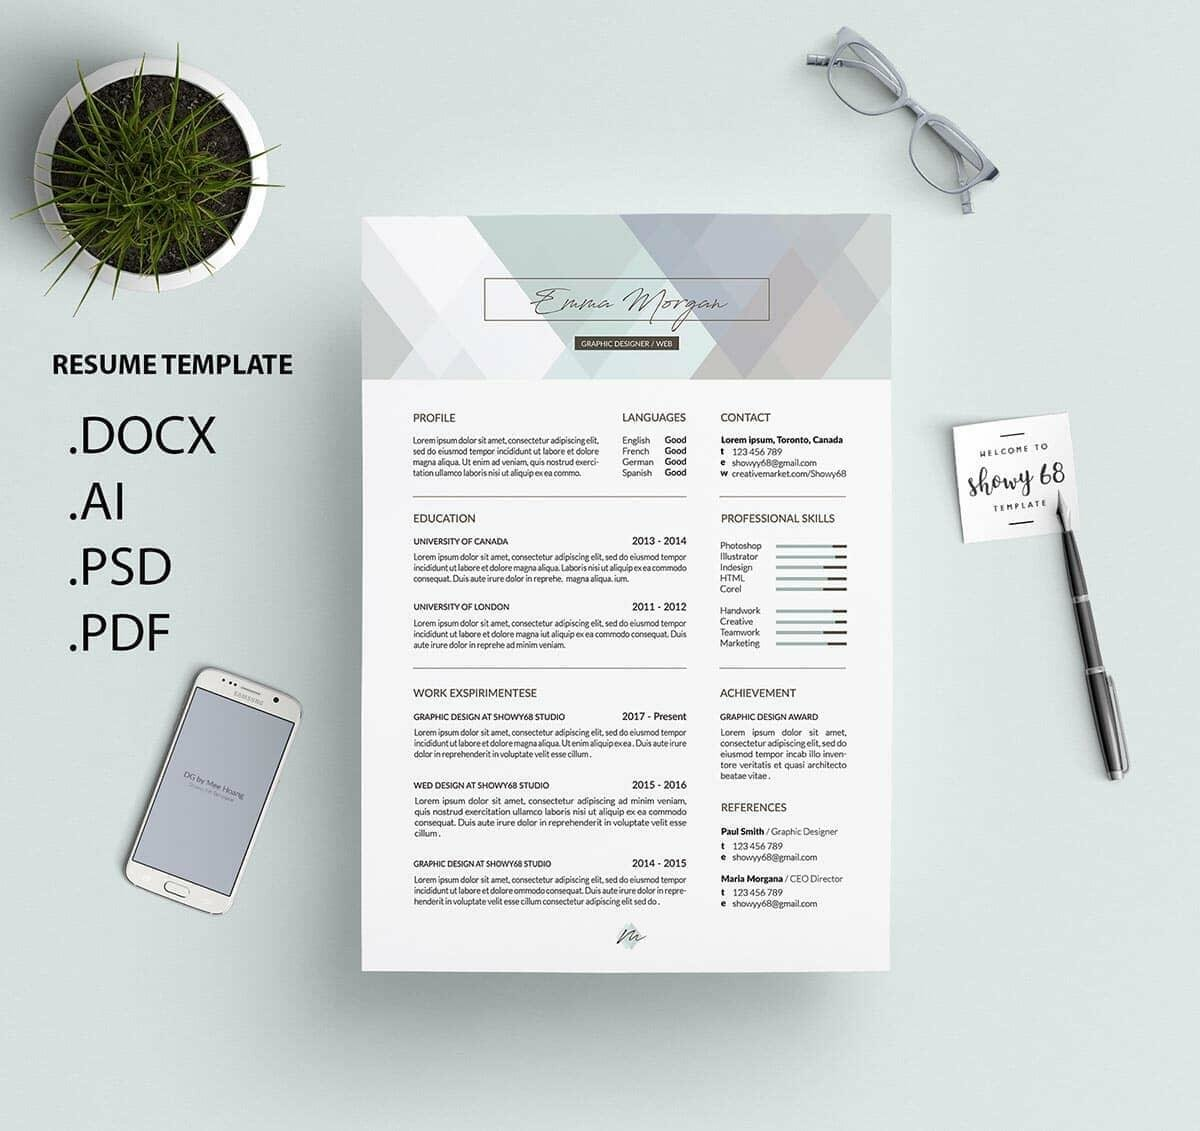 resume Best Resume Images best resume templates 15 examples to download use right away format template with pastel geometric header